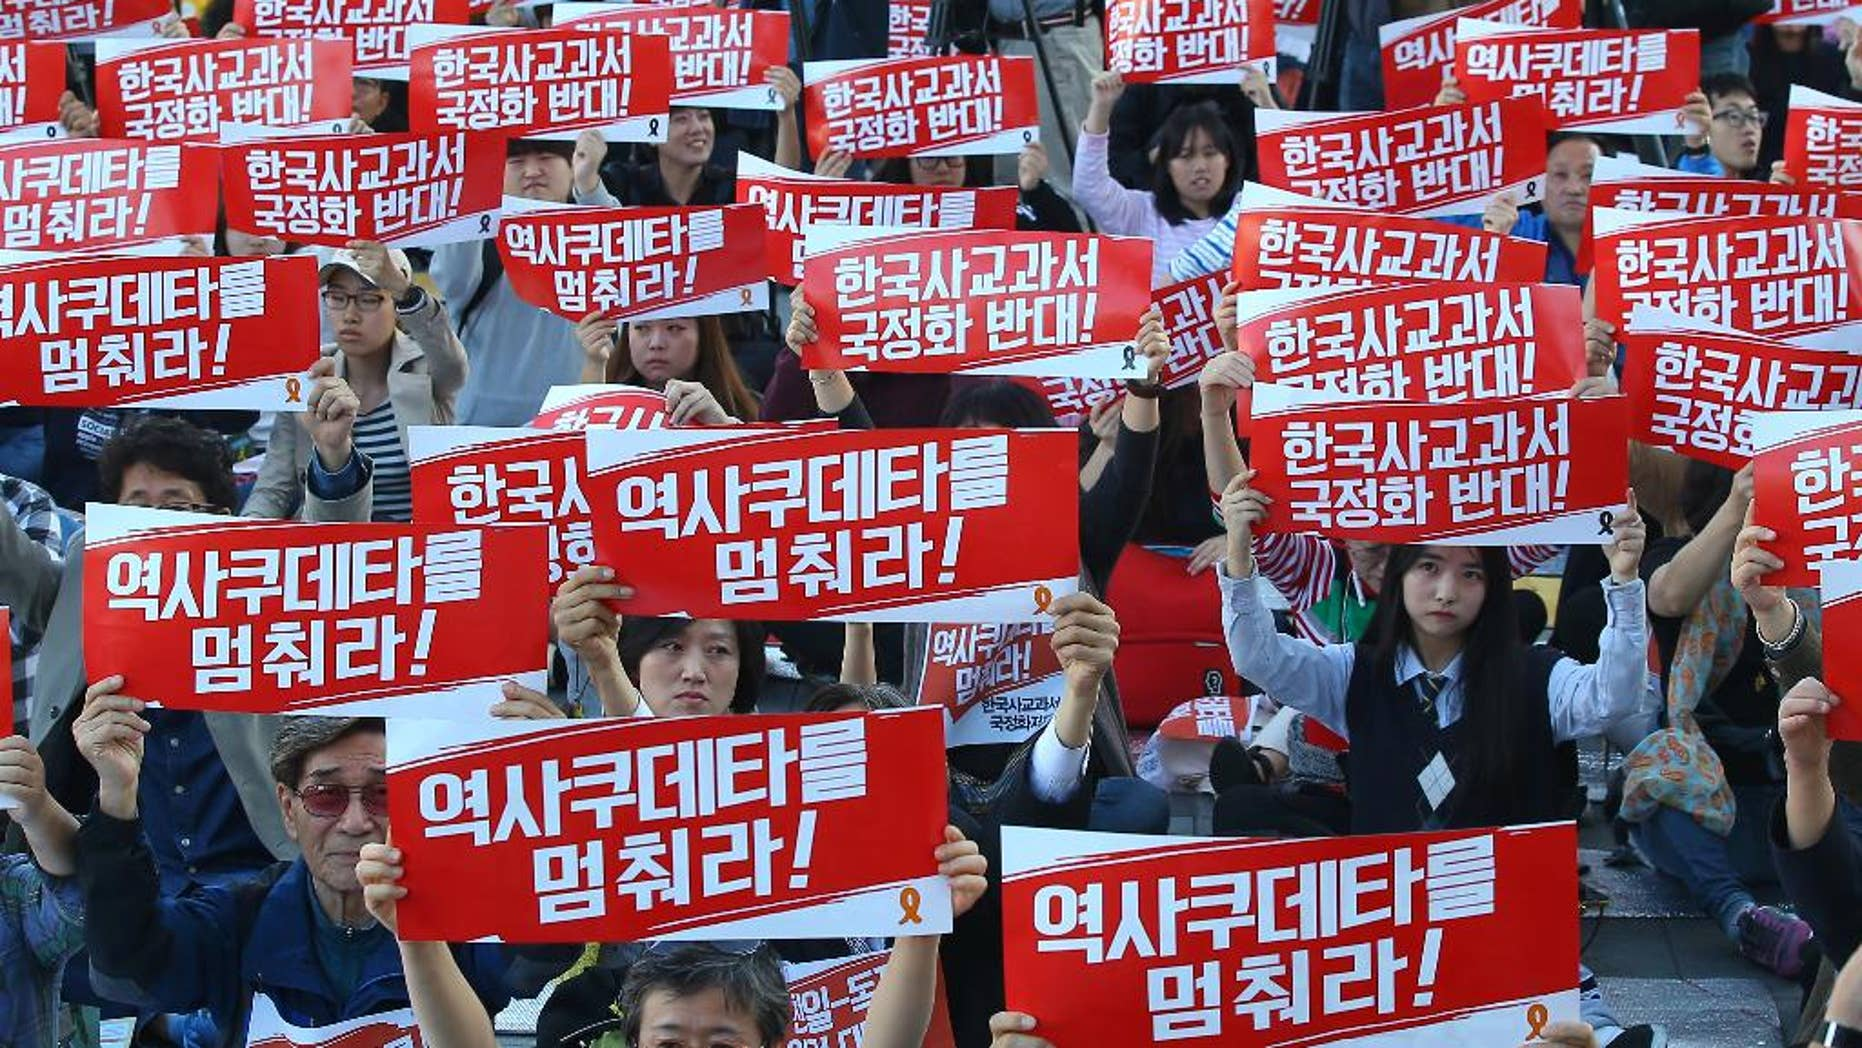 """Protesters shout slogans as they hold banners during a rally to opposite the government plan for the state issued history textbooks in Seoul, South Korea, Saturday, Oct. 17, 2015. Hundreds of South Korean scholars have declared they are boycotting the writing of state-issued history textbooks out of concern that that they will teach distorted views on the country's recent past. The banners read: """"Oppose, the state issued history textbooks."""" (Kim Do-hun/Yonhap via AP) KOREA OUT"""